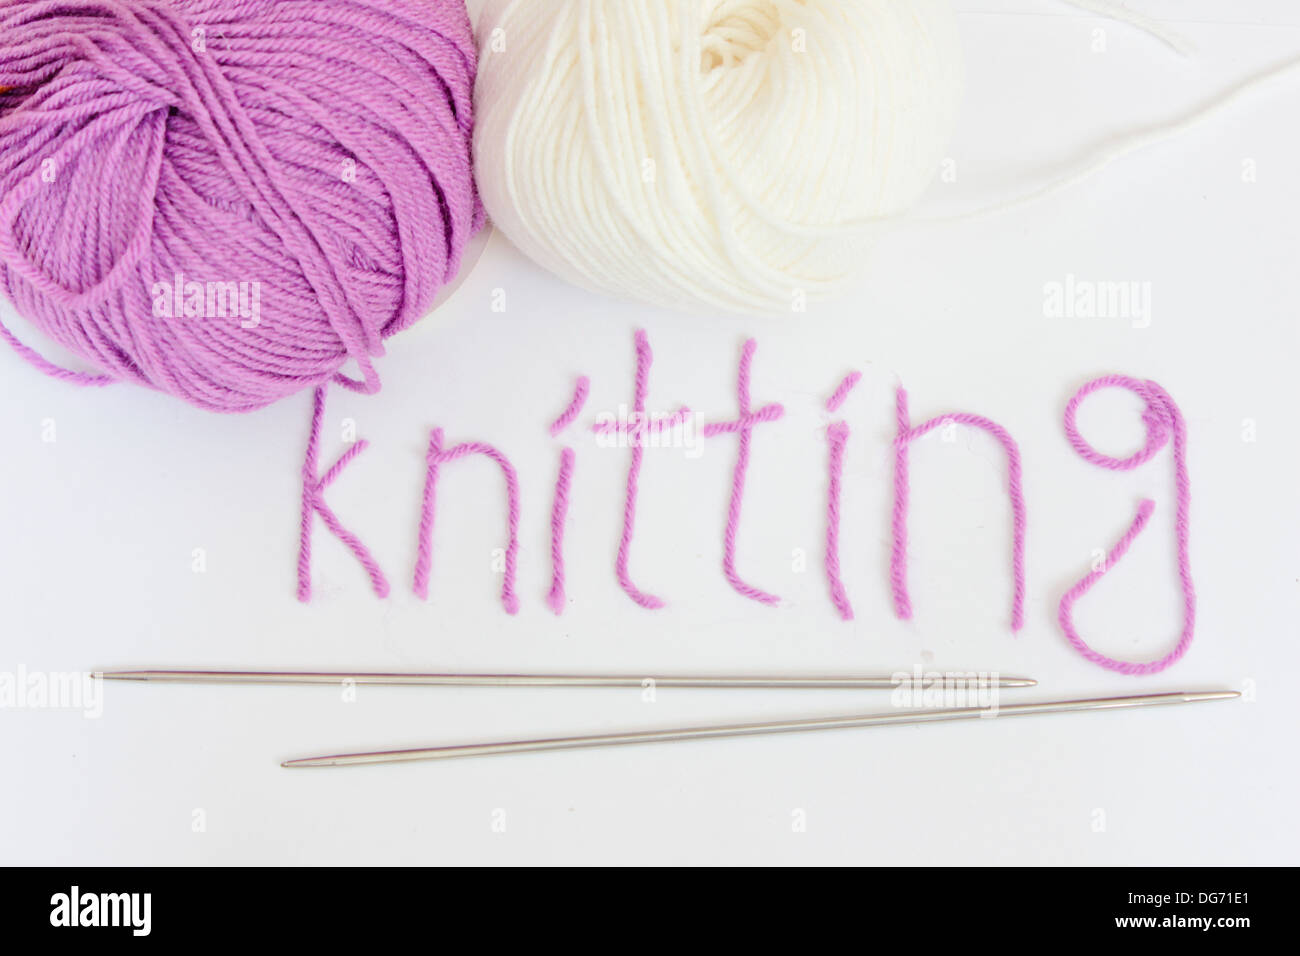 knitting quotknitting needlesquot text word crafts hobby